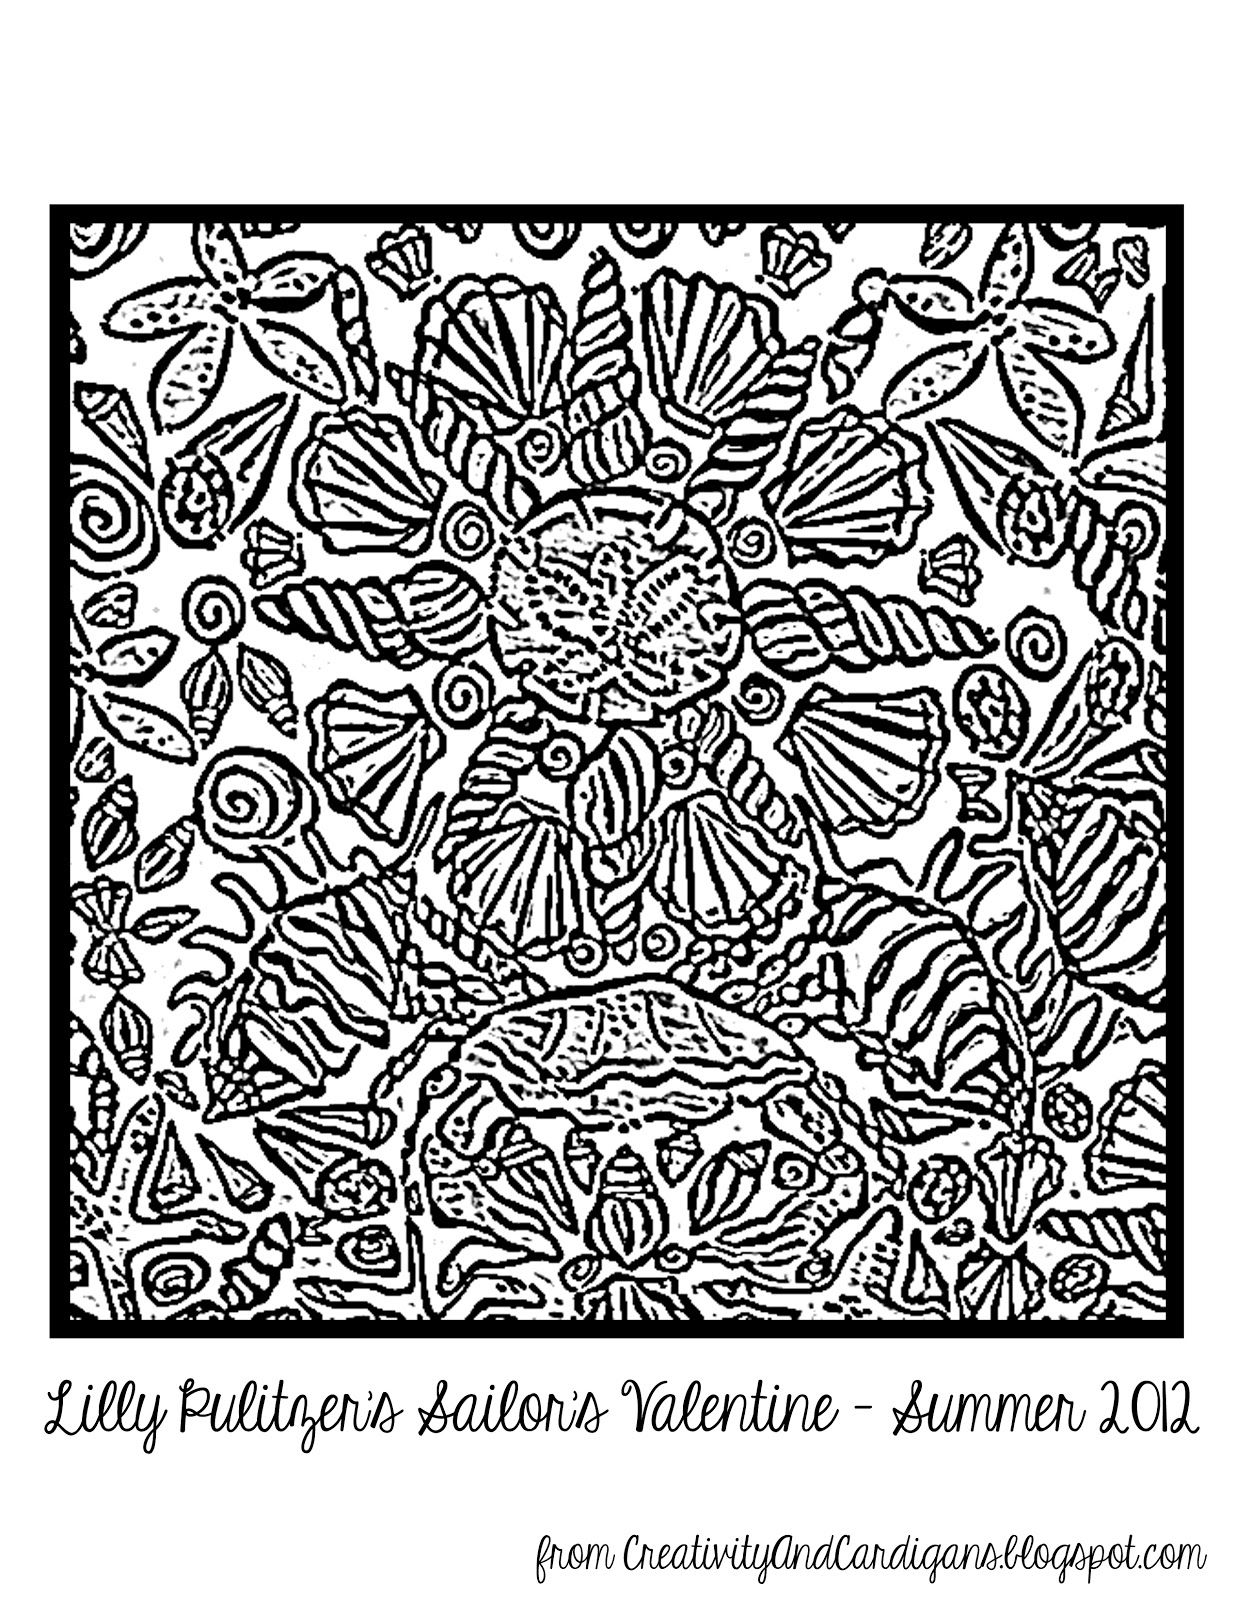 Lilly Pulitzer Sailor S Valentine Coloring Page Valentine Coloring Pages Coloring Pages Valentine Coloring